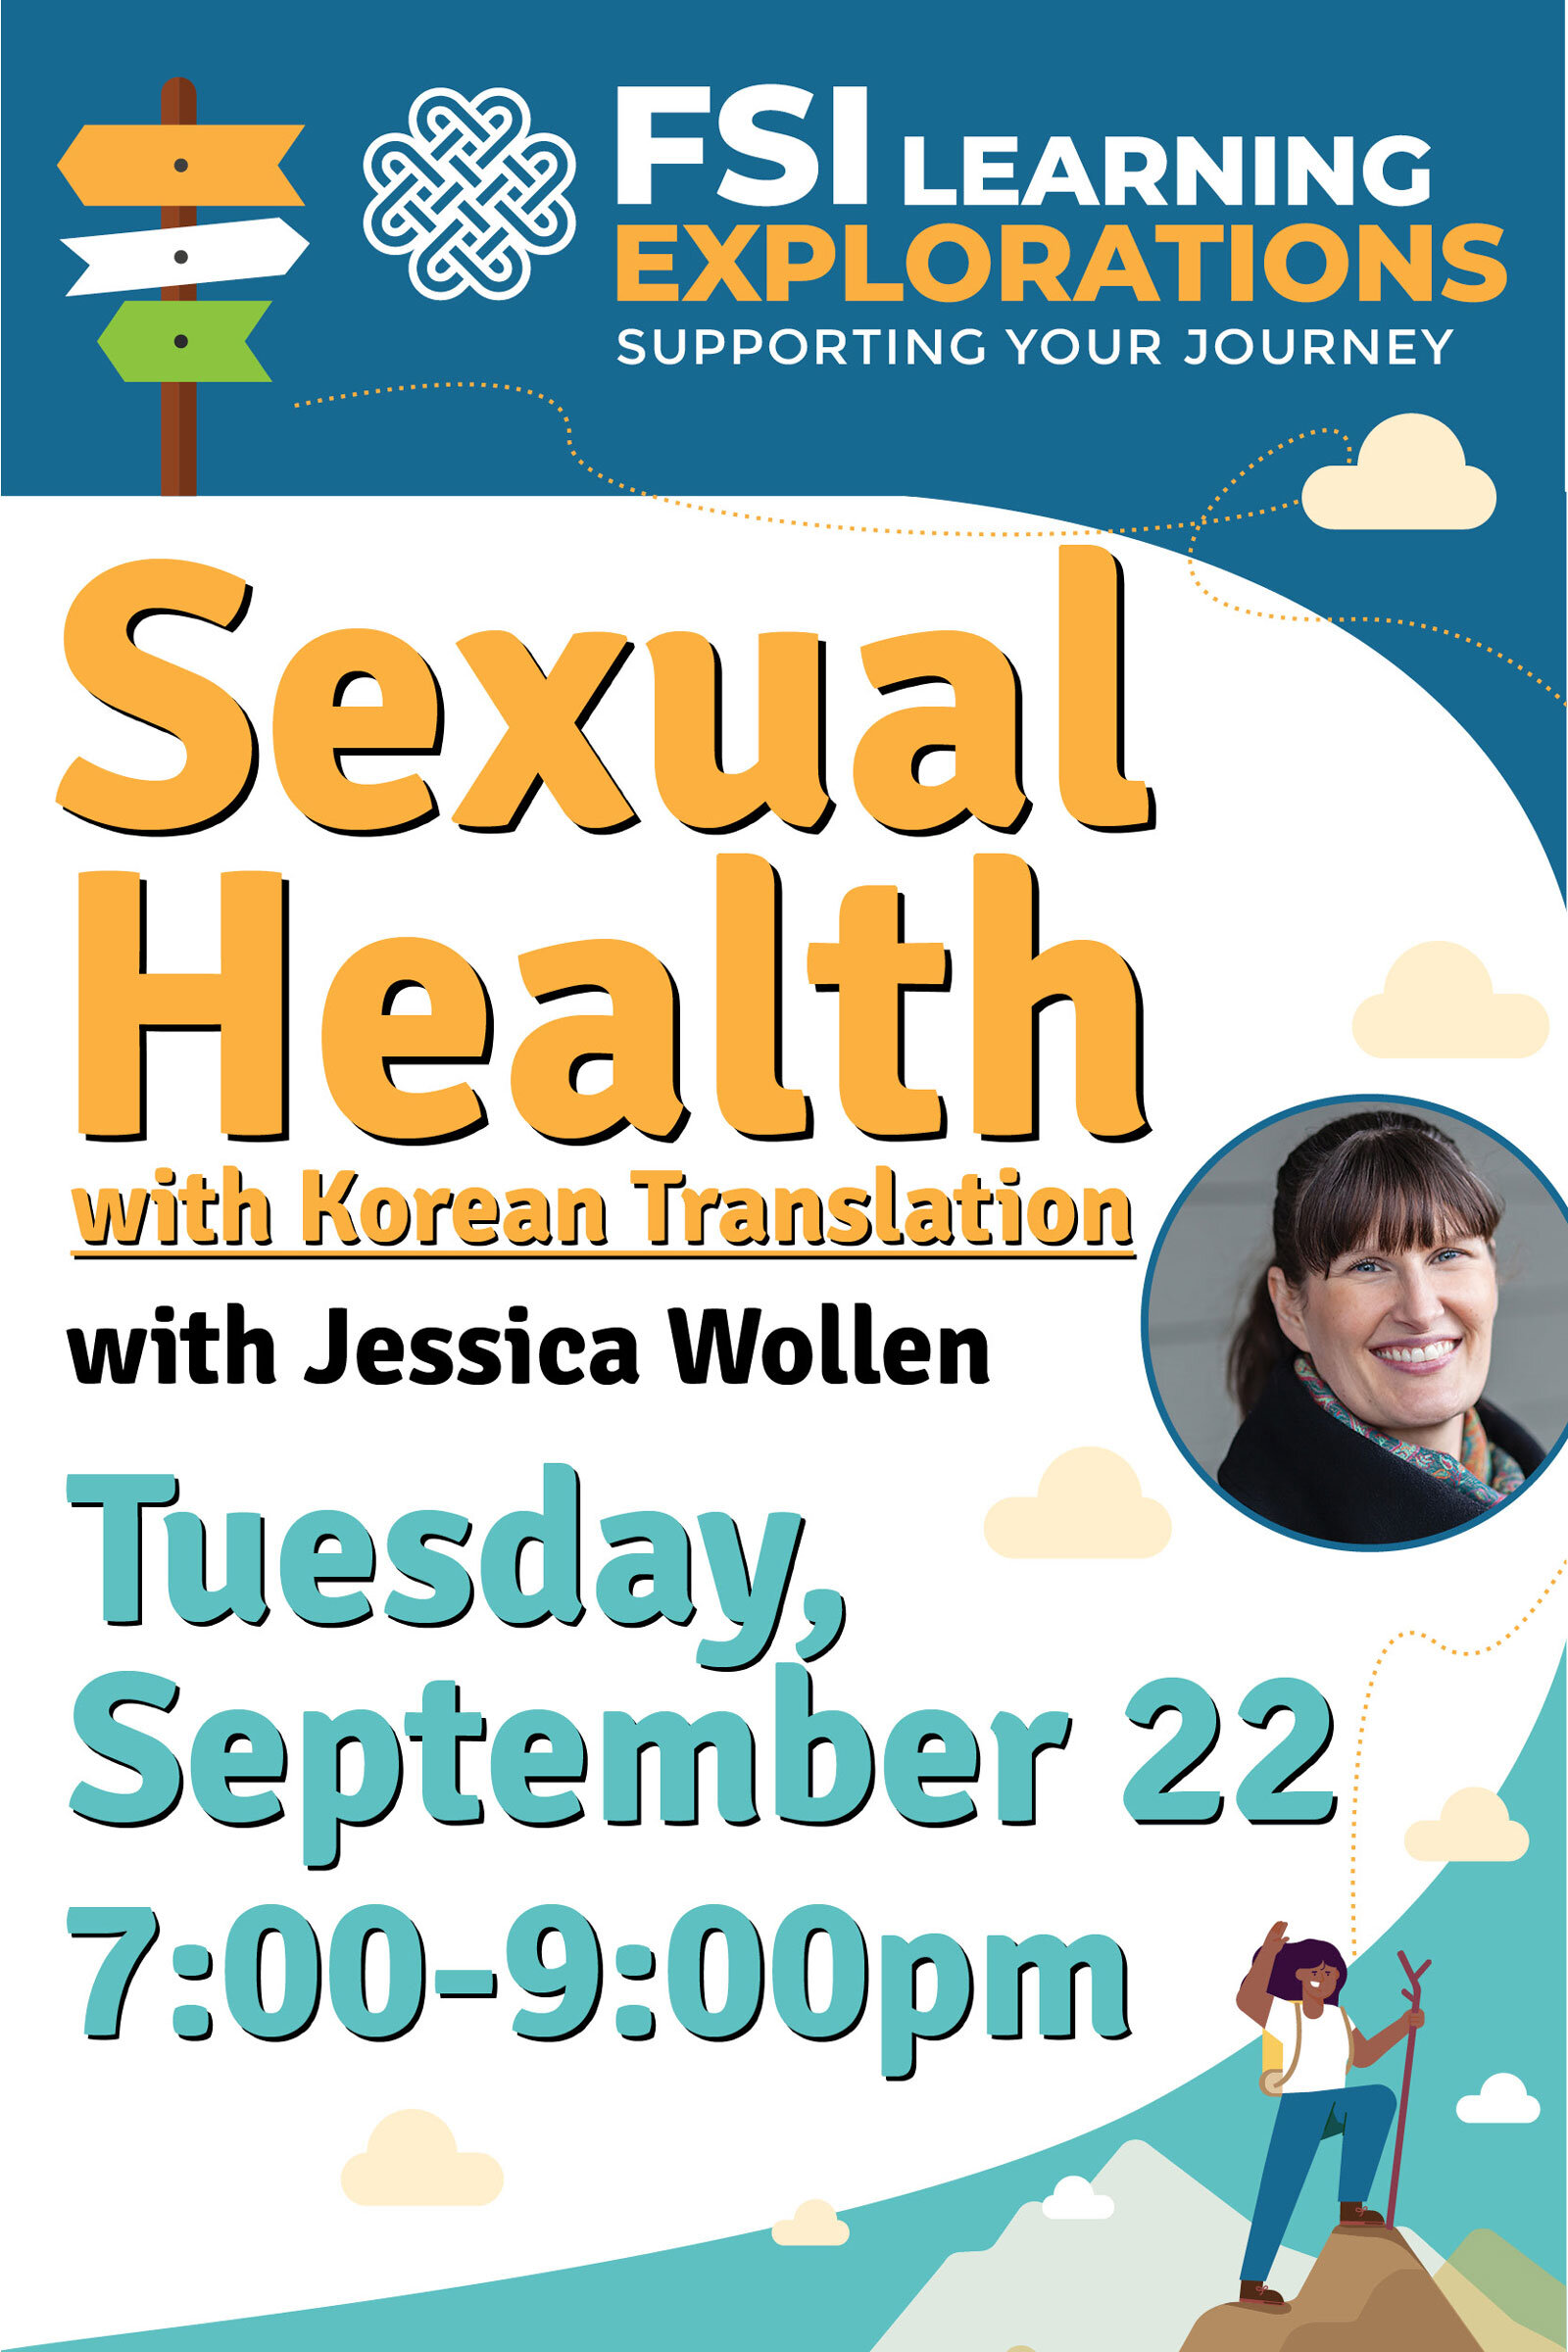 FSI Learning Explorations - Sexual Health with Korean Translation